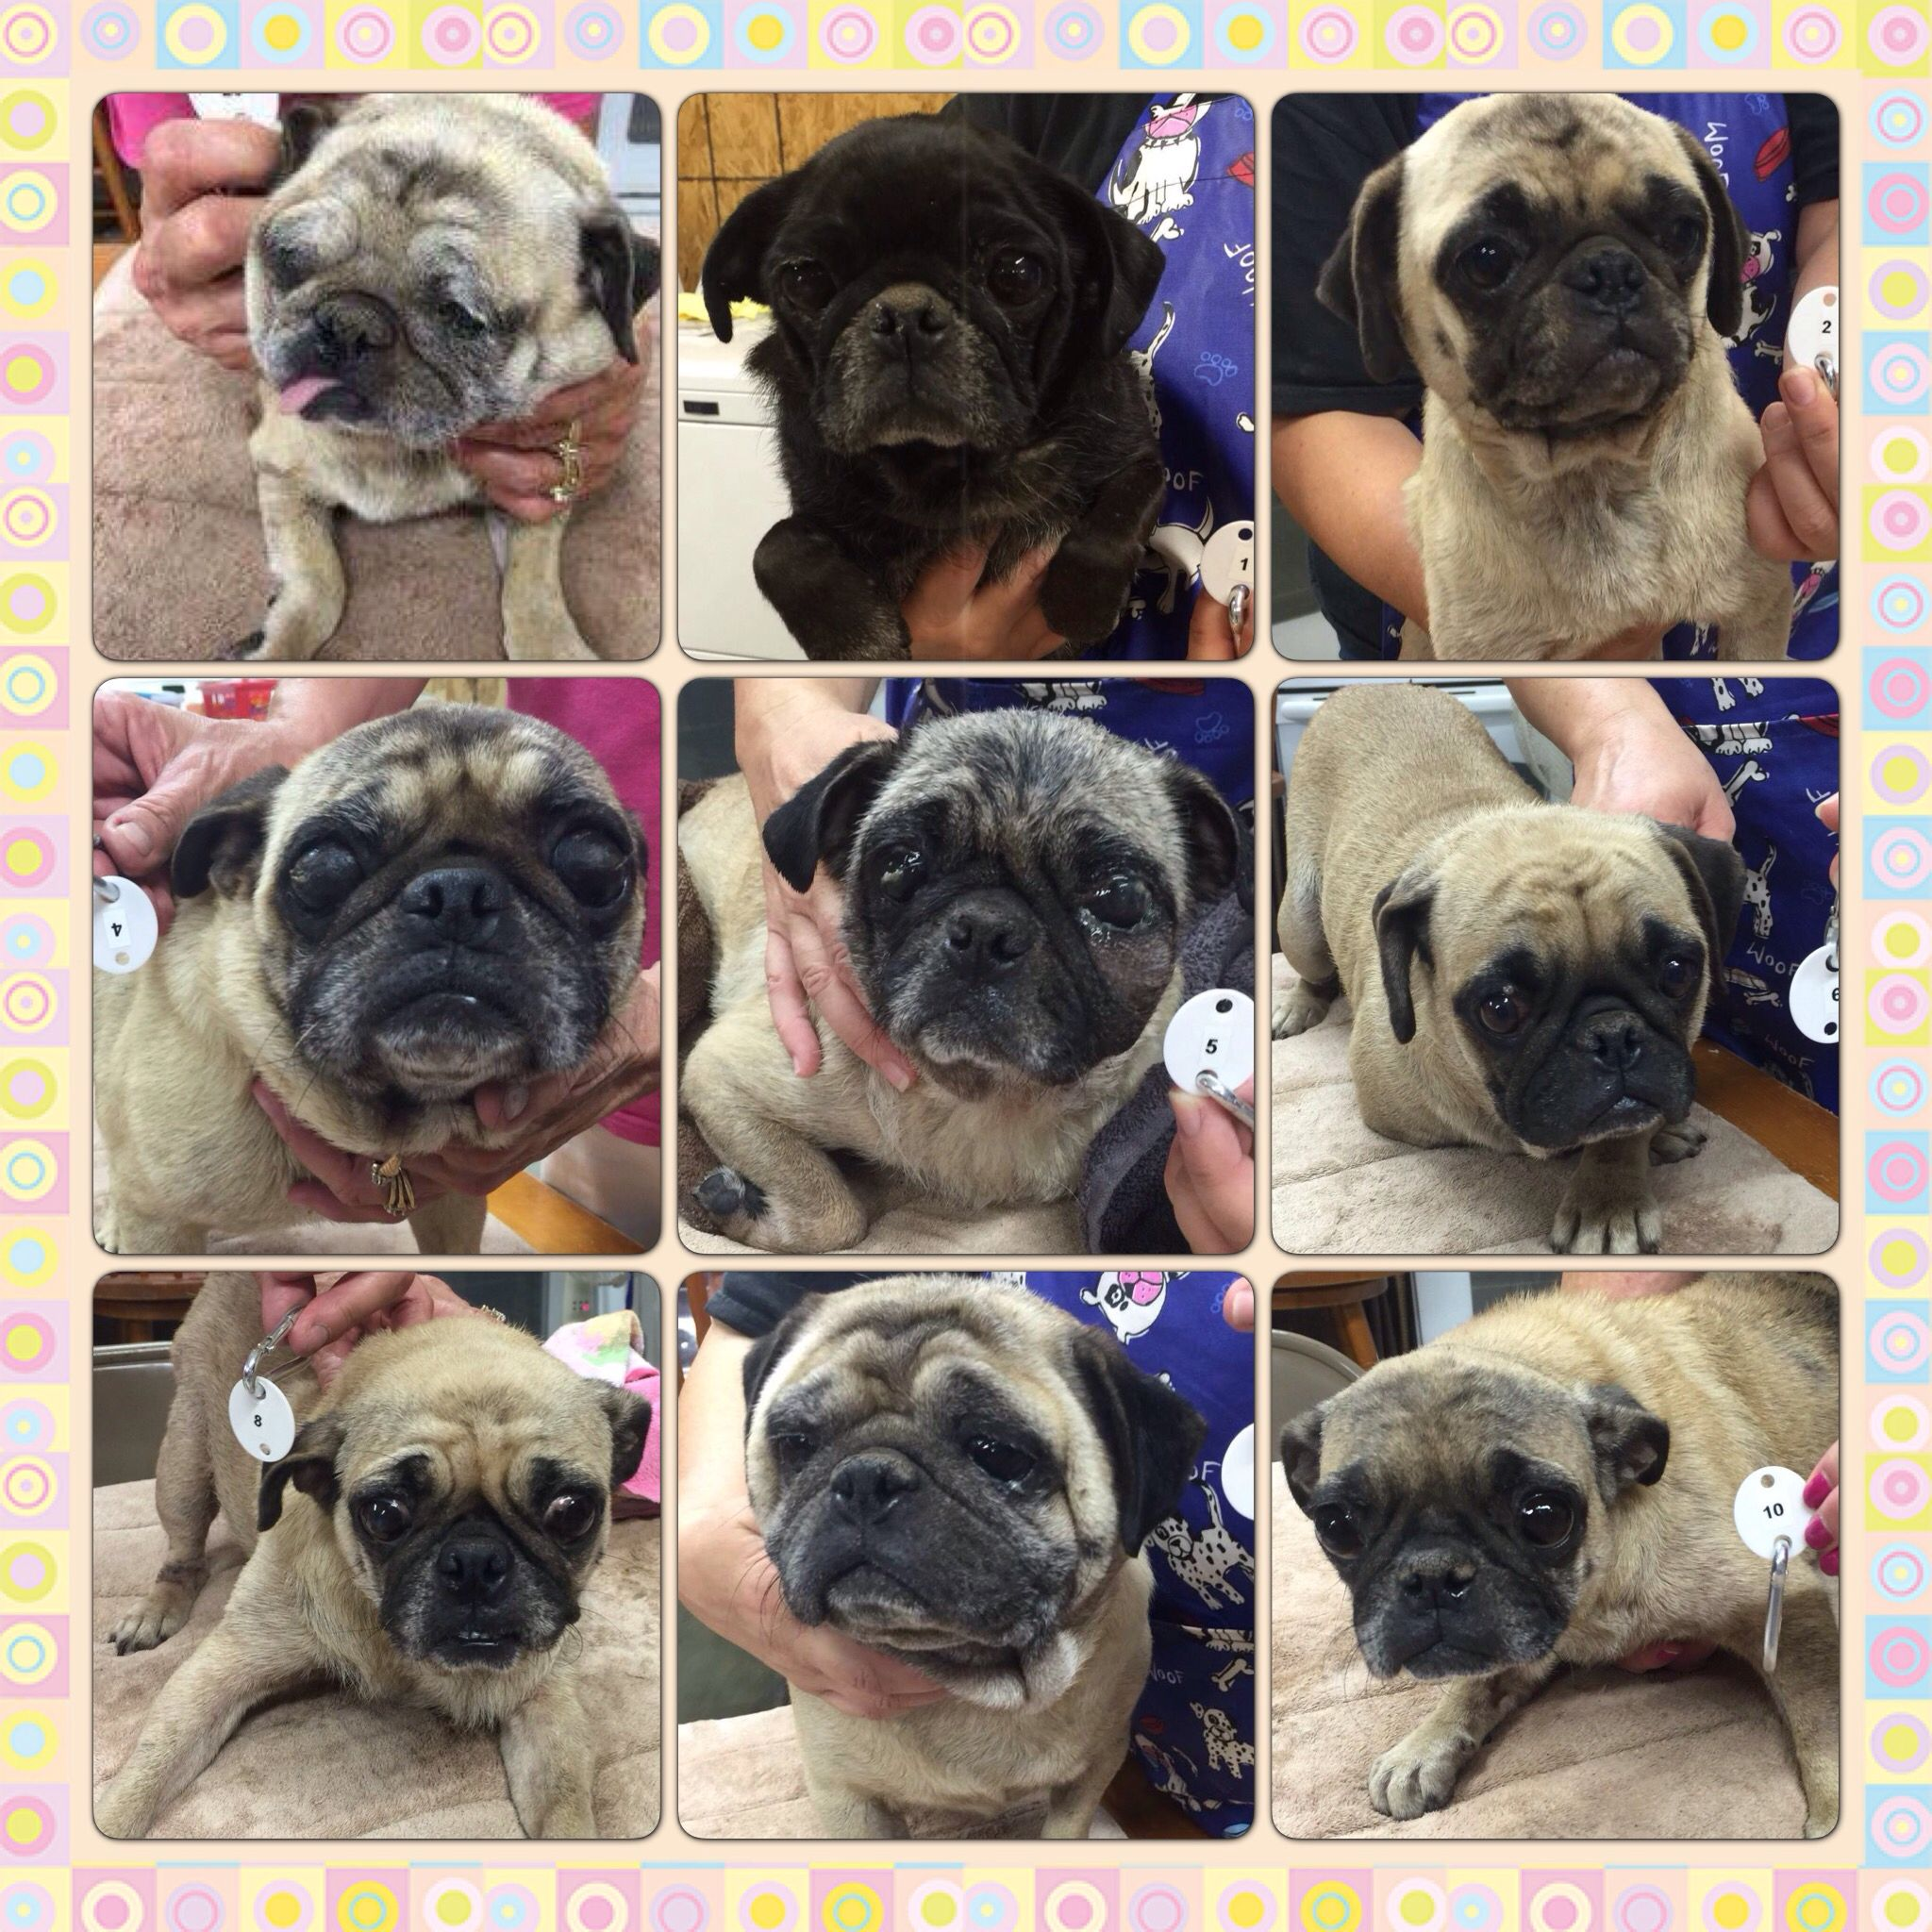 Until Last Night 32 Distressed Pugs In North Texas All Were